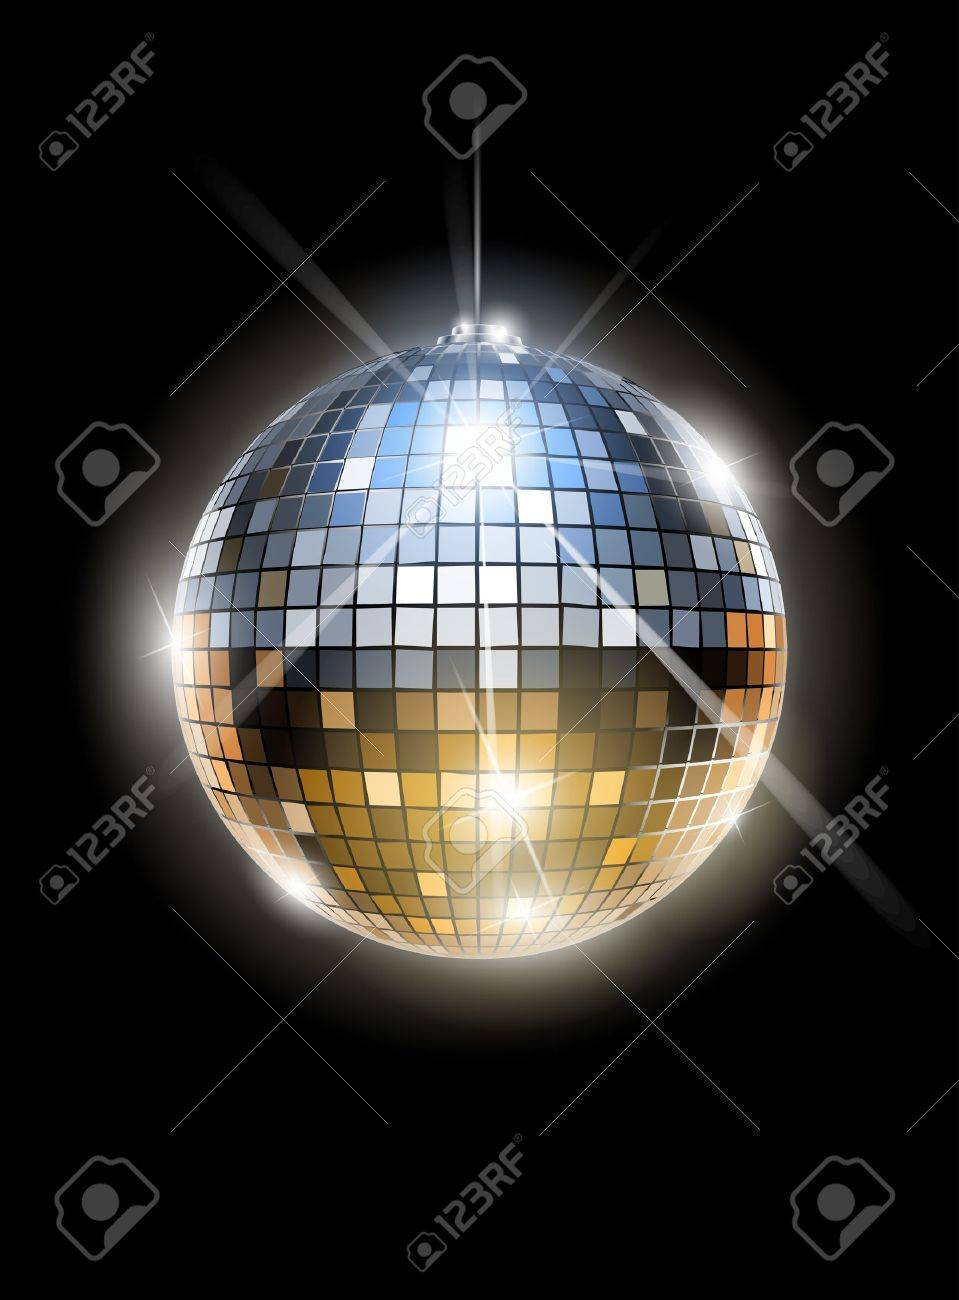 mirror disco ball vector illustration EPS10. Transparent objects and opacity masks used for shadows and lights drawing Stock Vector - 12942868